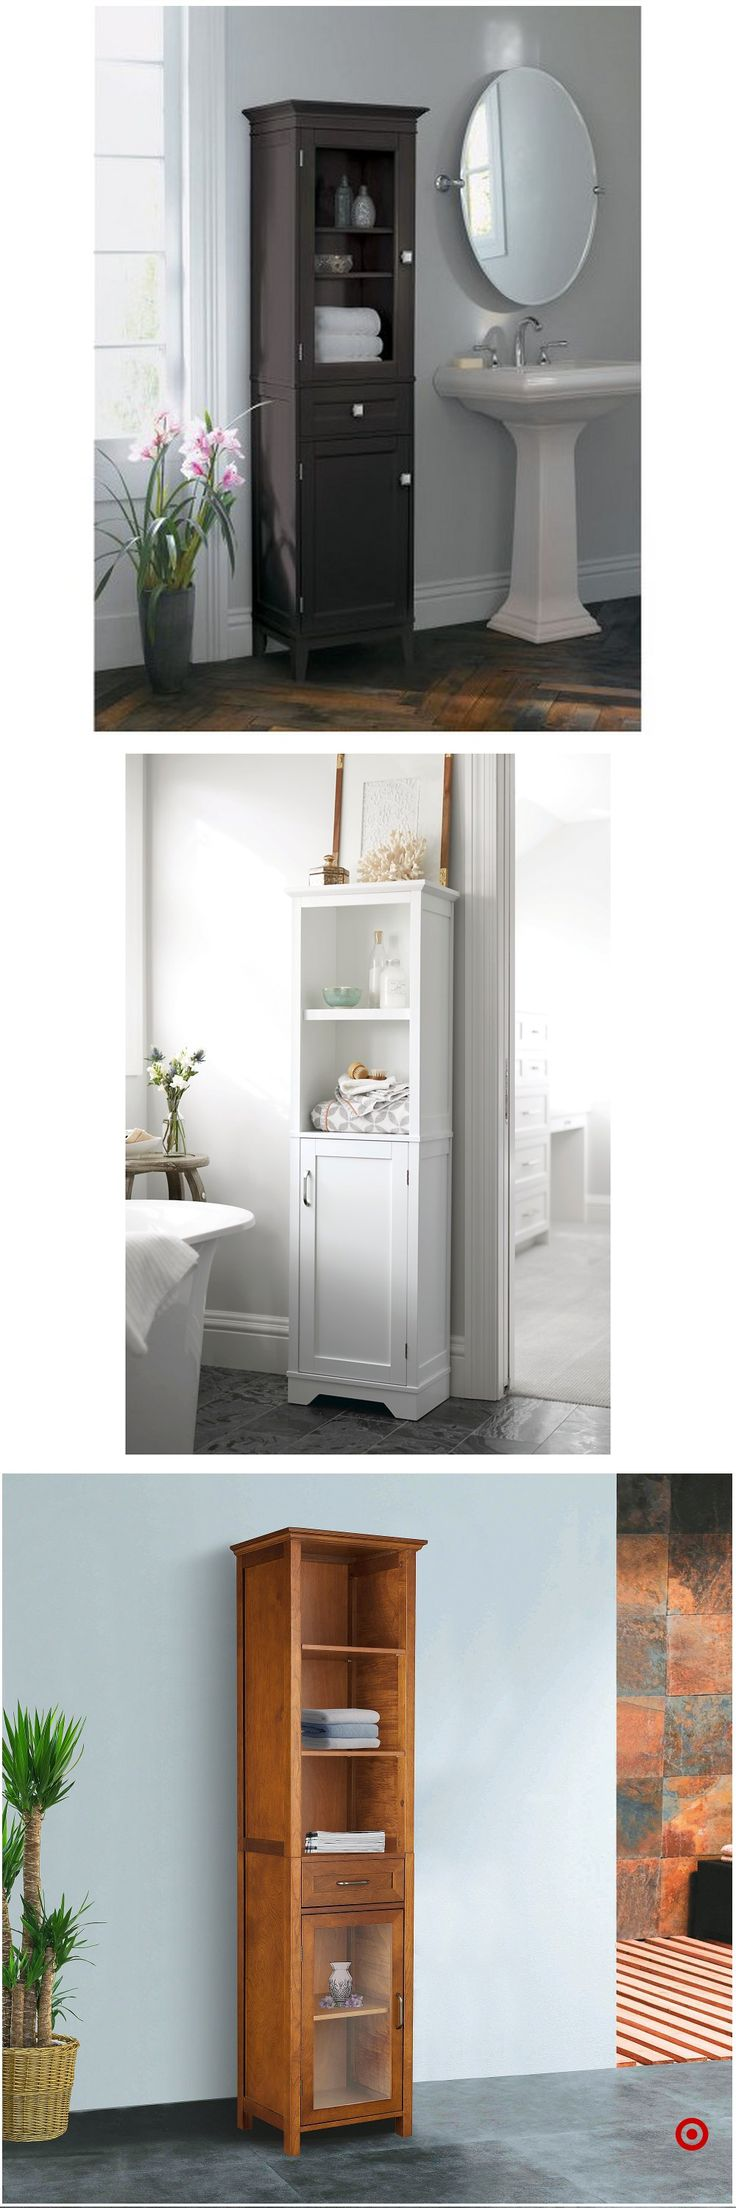 Best 25 Linen Cabinet In Bathroom Ideas On Pinterest Built In Bathroom Storage Small